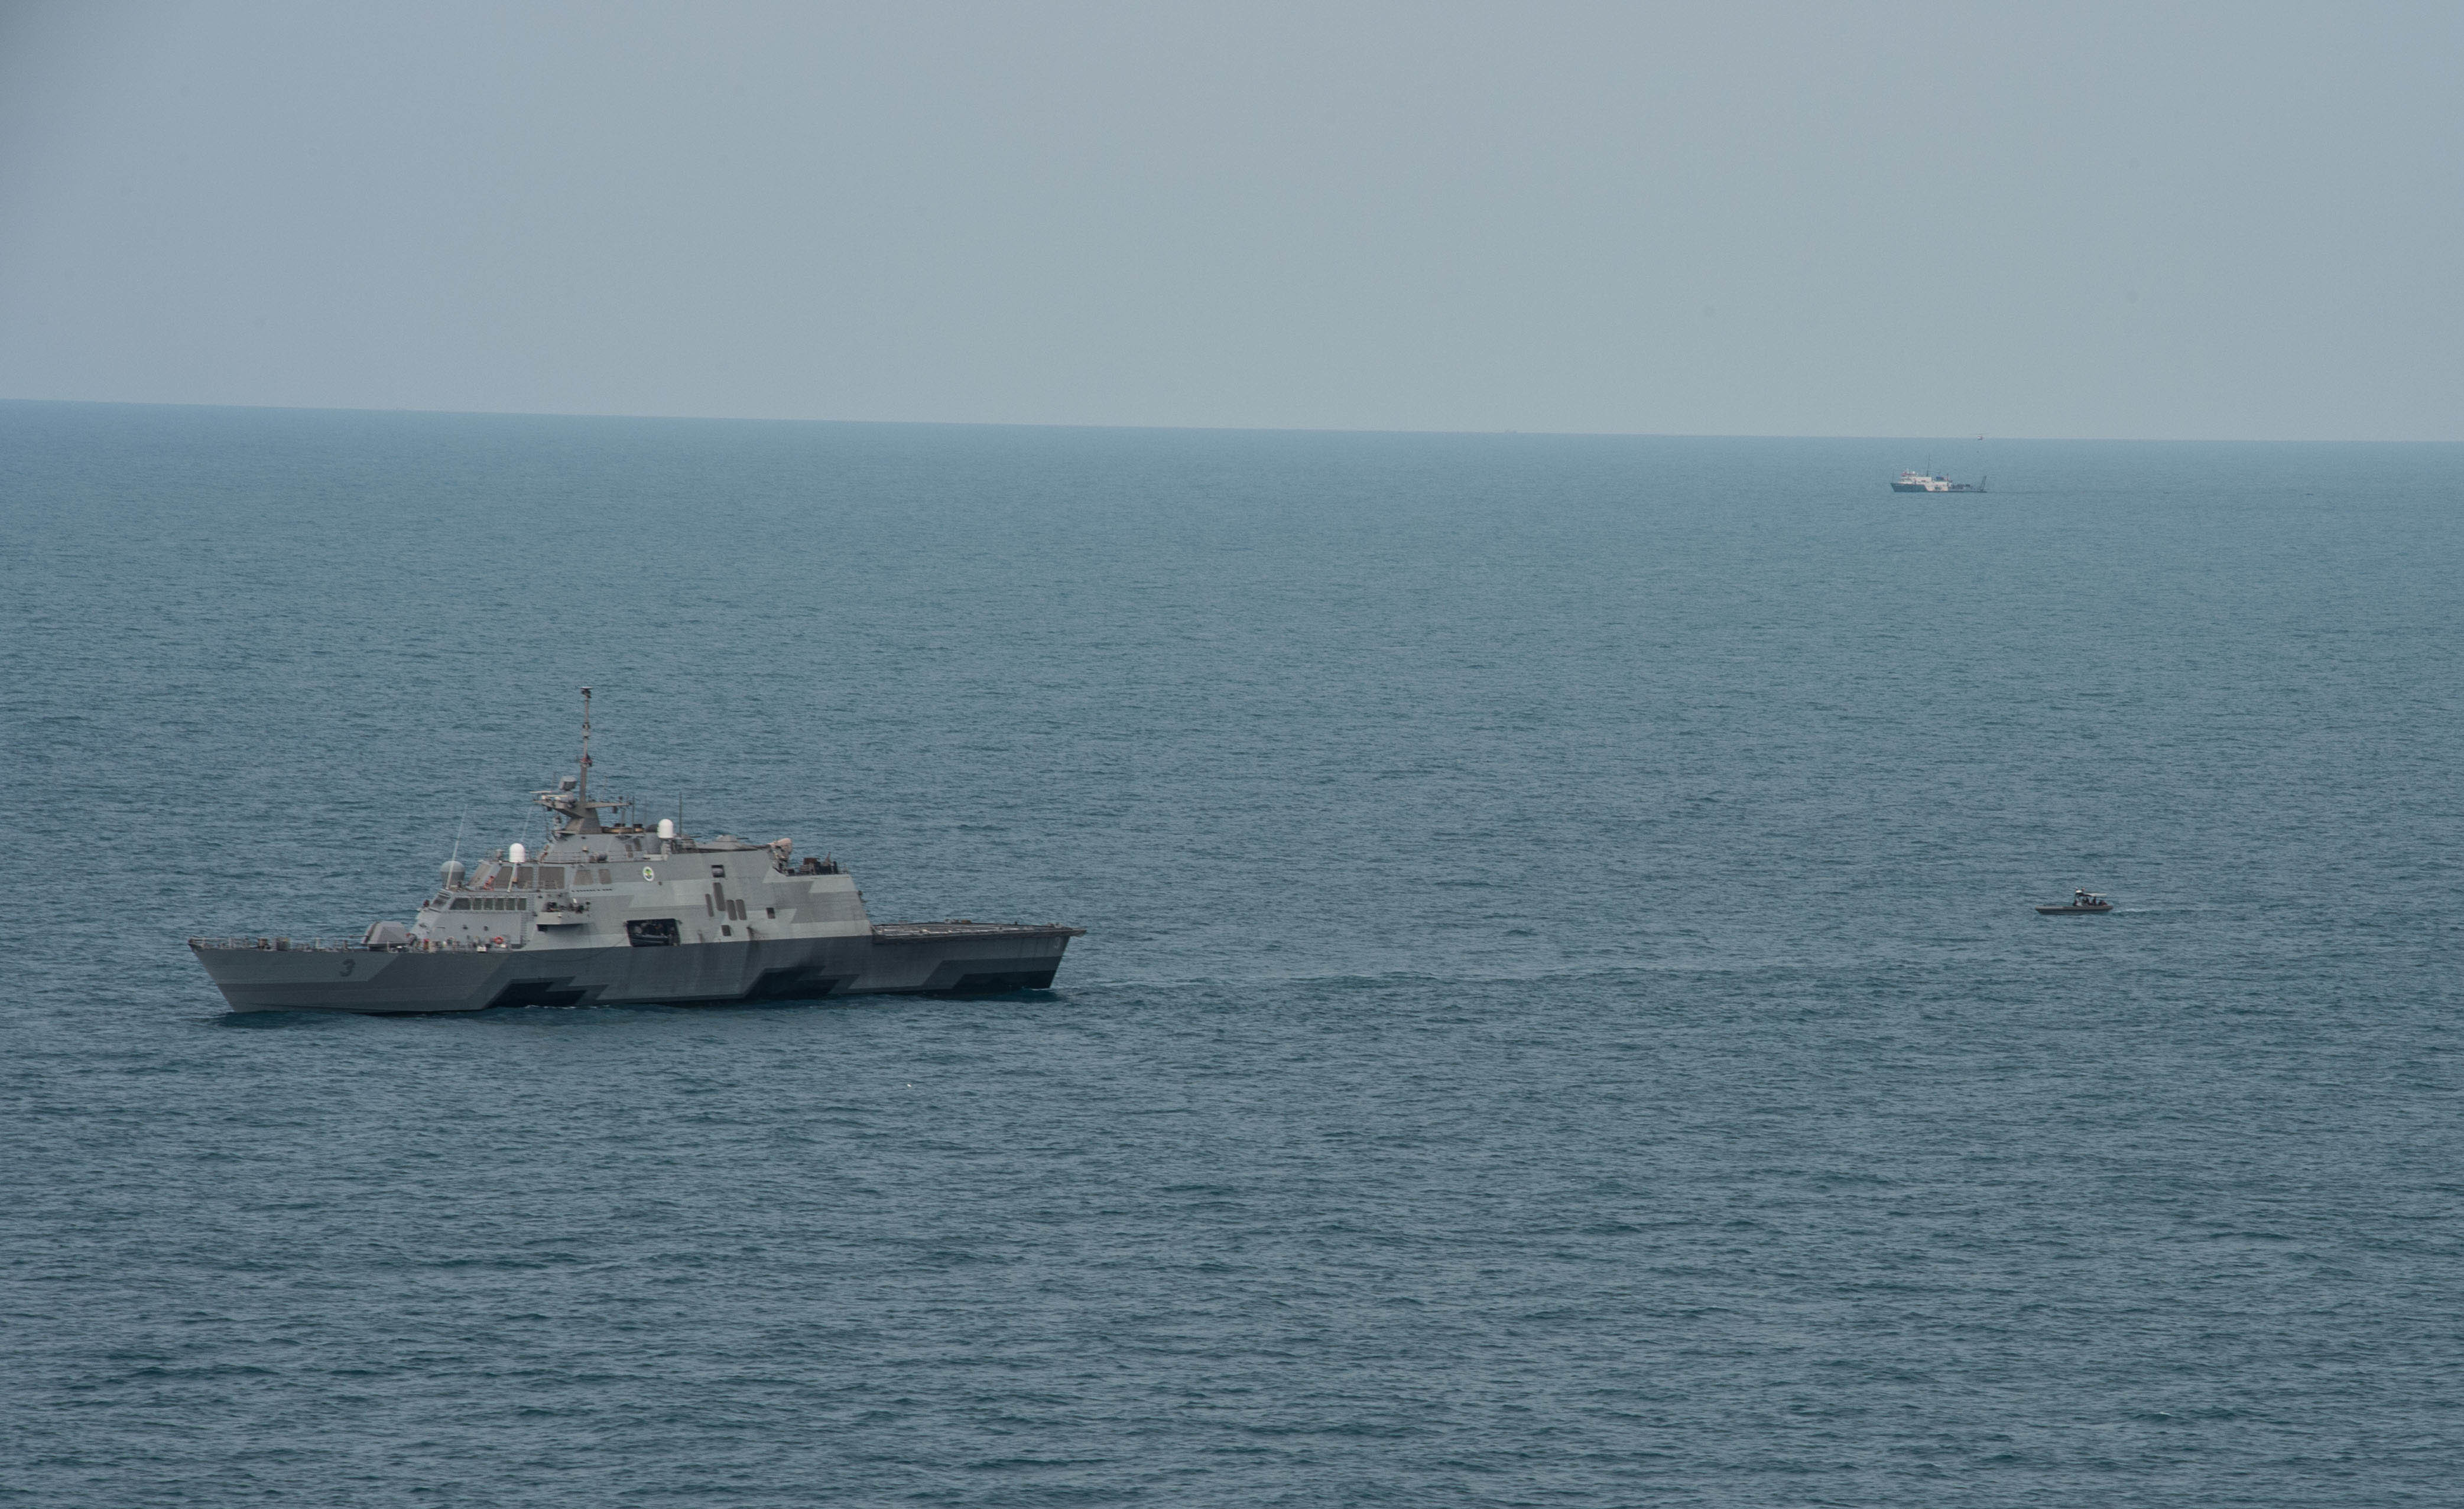 USS Fort Worth (LCS-3) in the Java Sea on Jan. 7, 2014. US Navy Photo